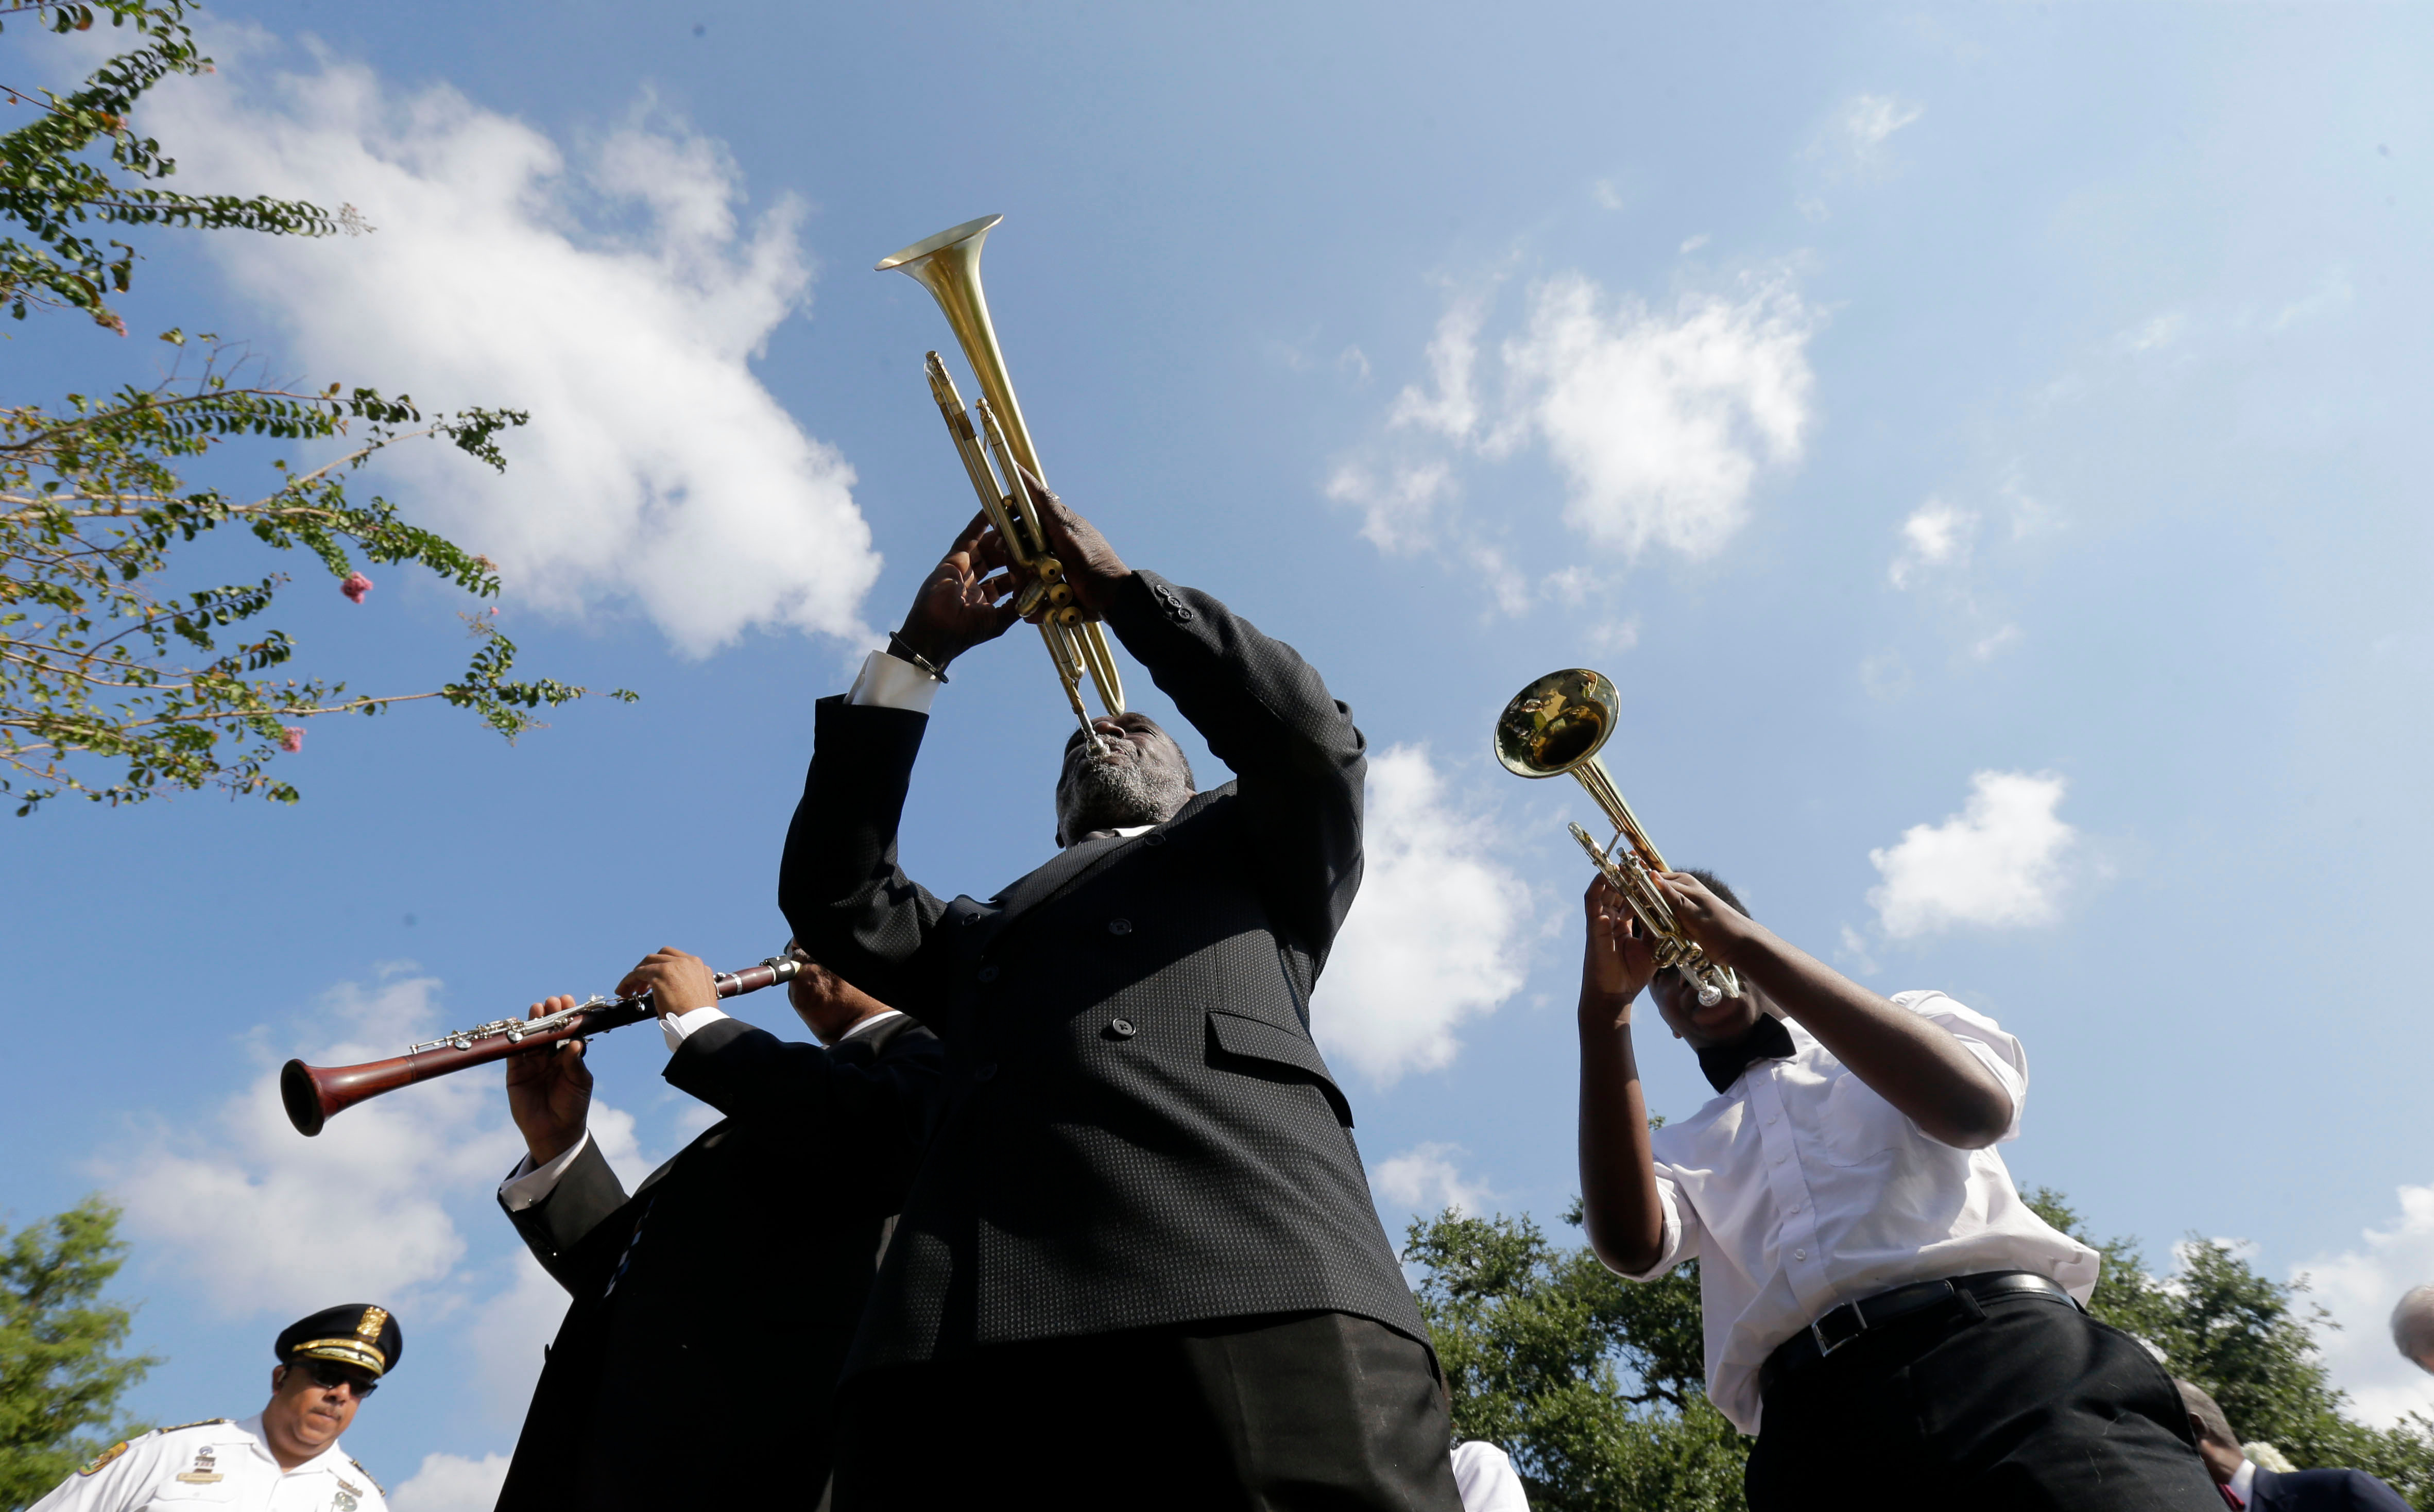 AP10ThingsToSee - Musicians lead a procession during a wreath laying ceremony at the Hurricane Katrina Memorial on the 10th anniversary of Hurricane Katrina in New Orleans onAP10ThingsToSee Katrina Anniversary, New Orleans, USA